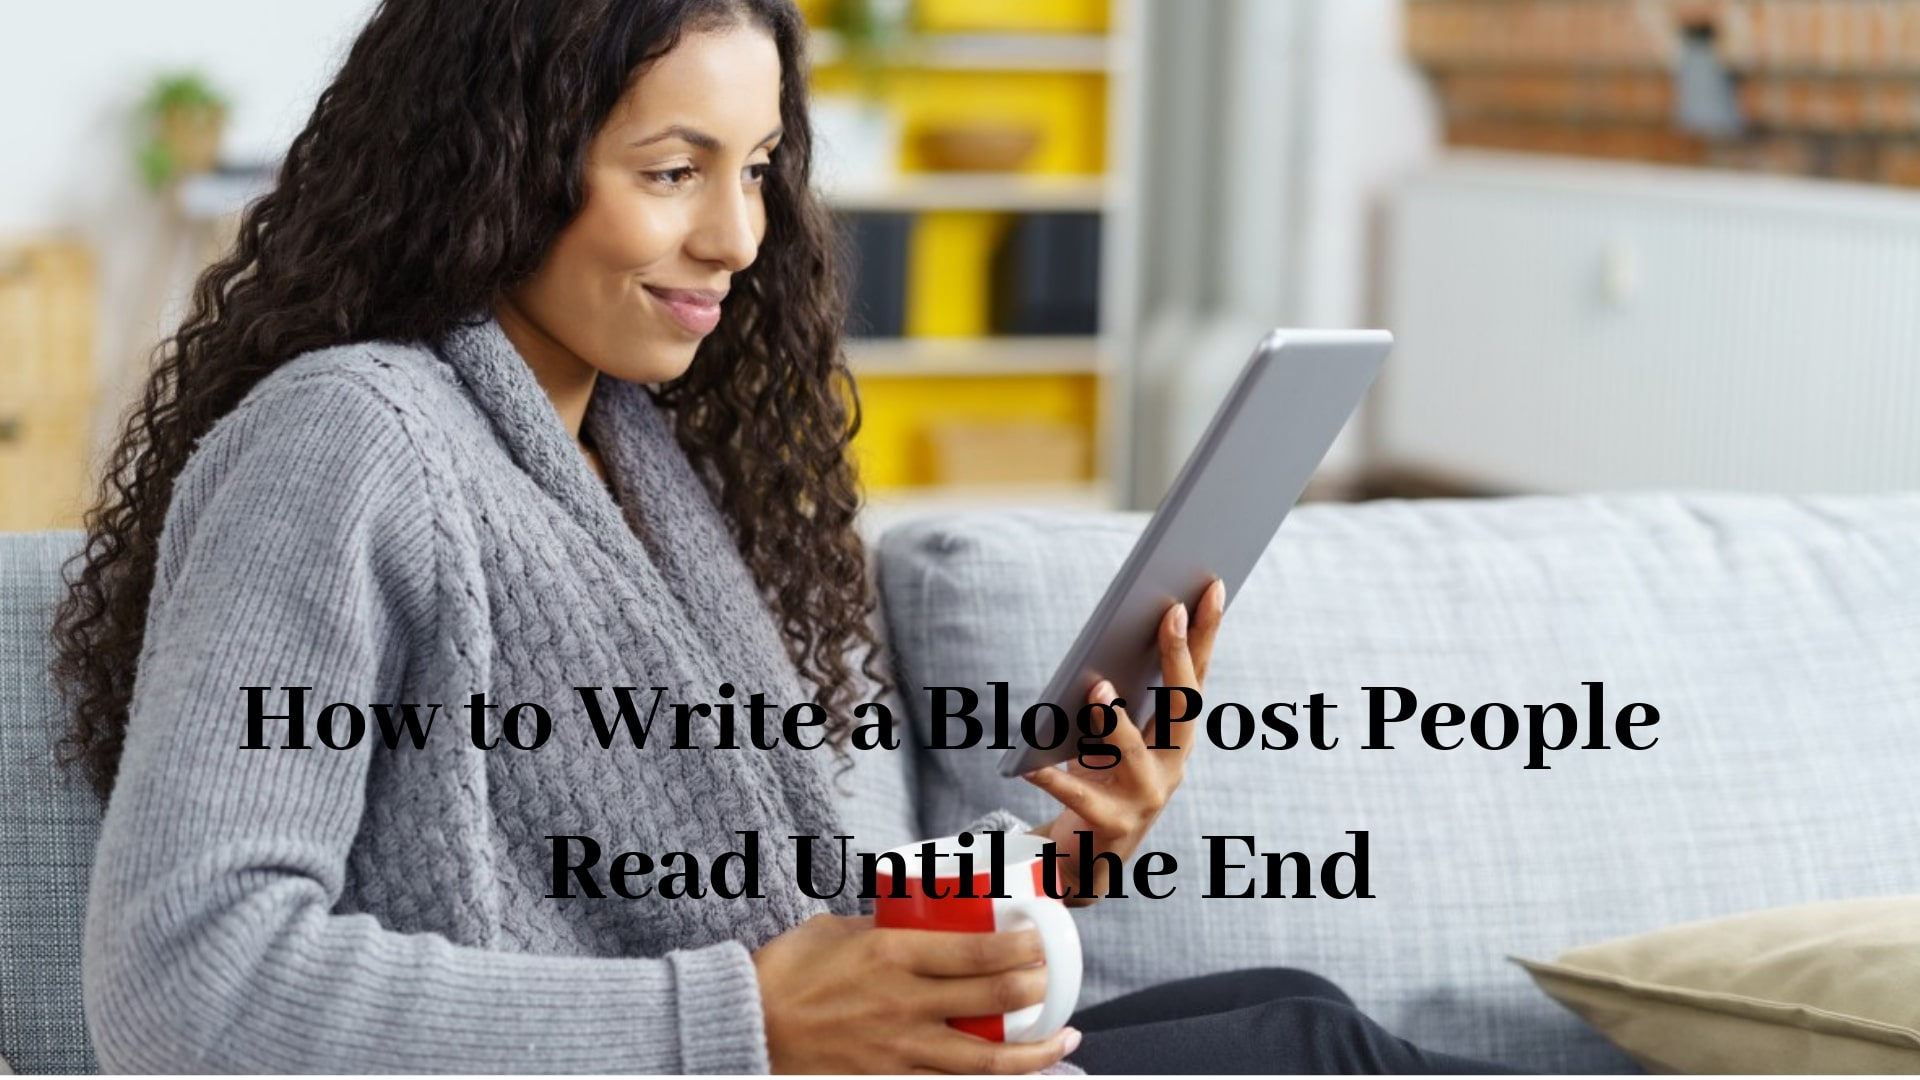 How to Write a Blog Post People Read Until the End